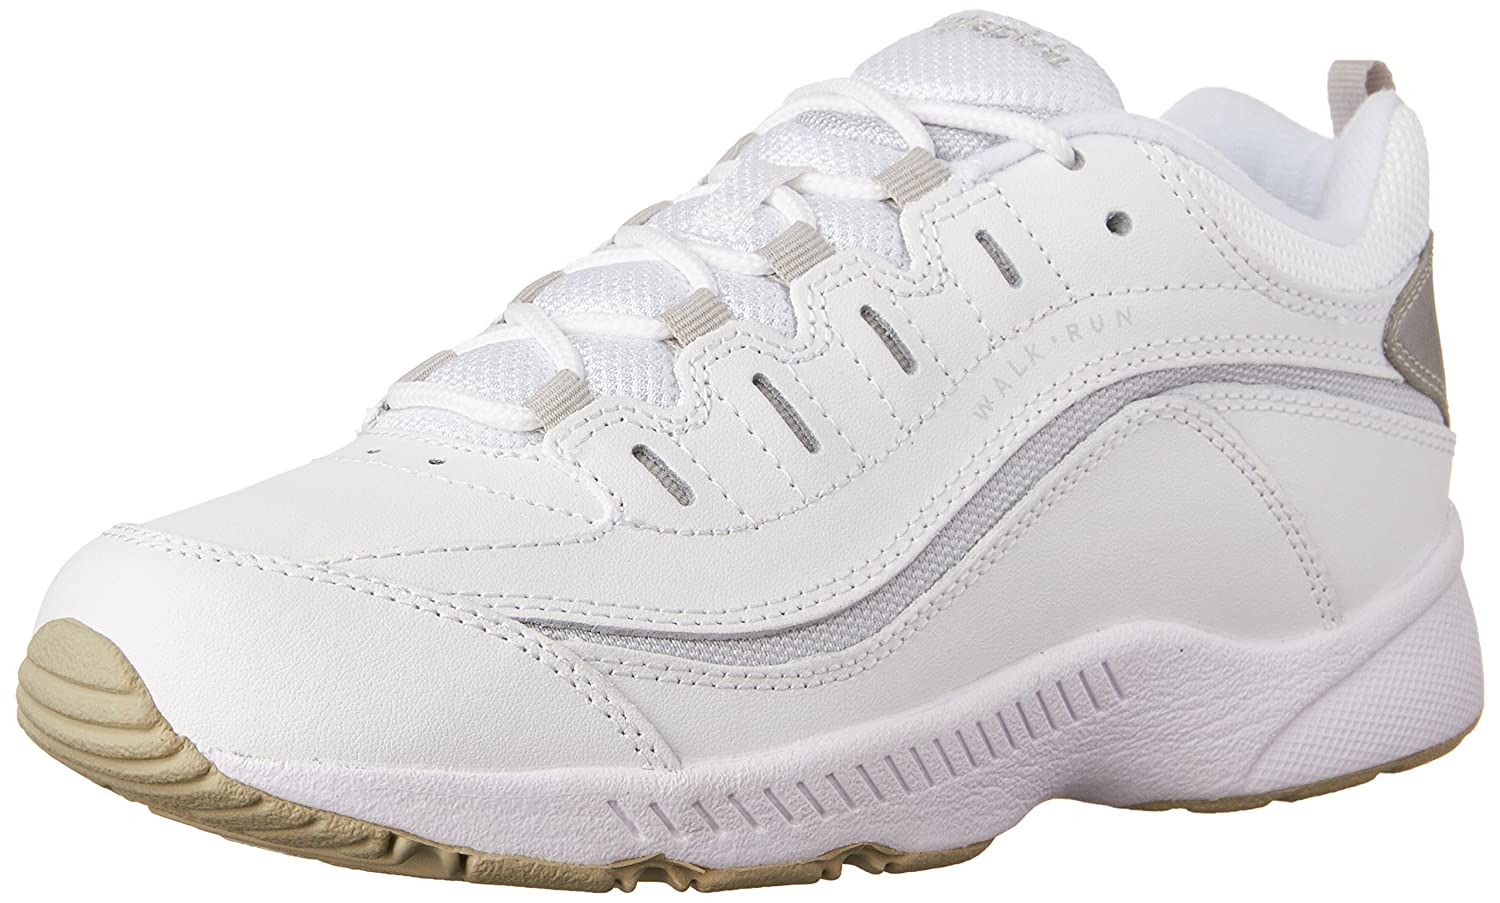 Easy Spirit Women's Romy Walking Shoe B000F608H4 9 B(M) US|White/ Light Grey